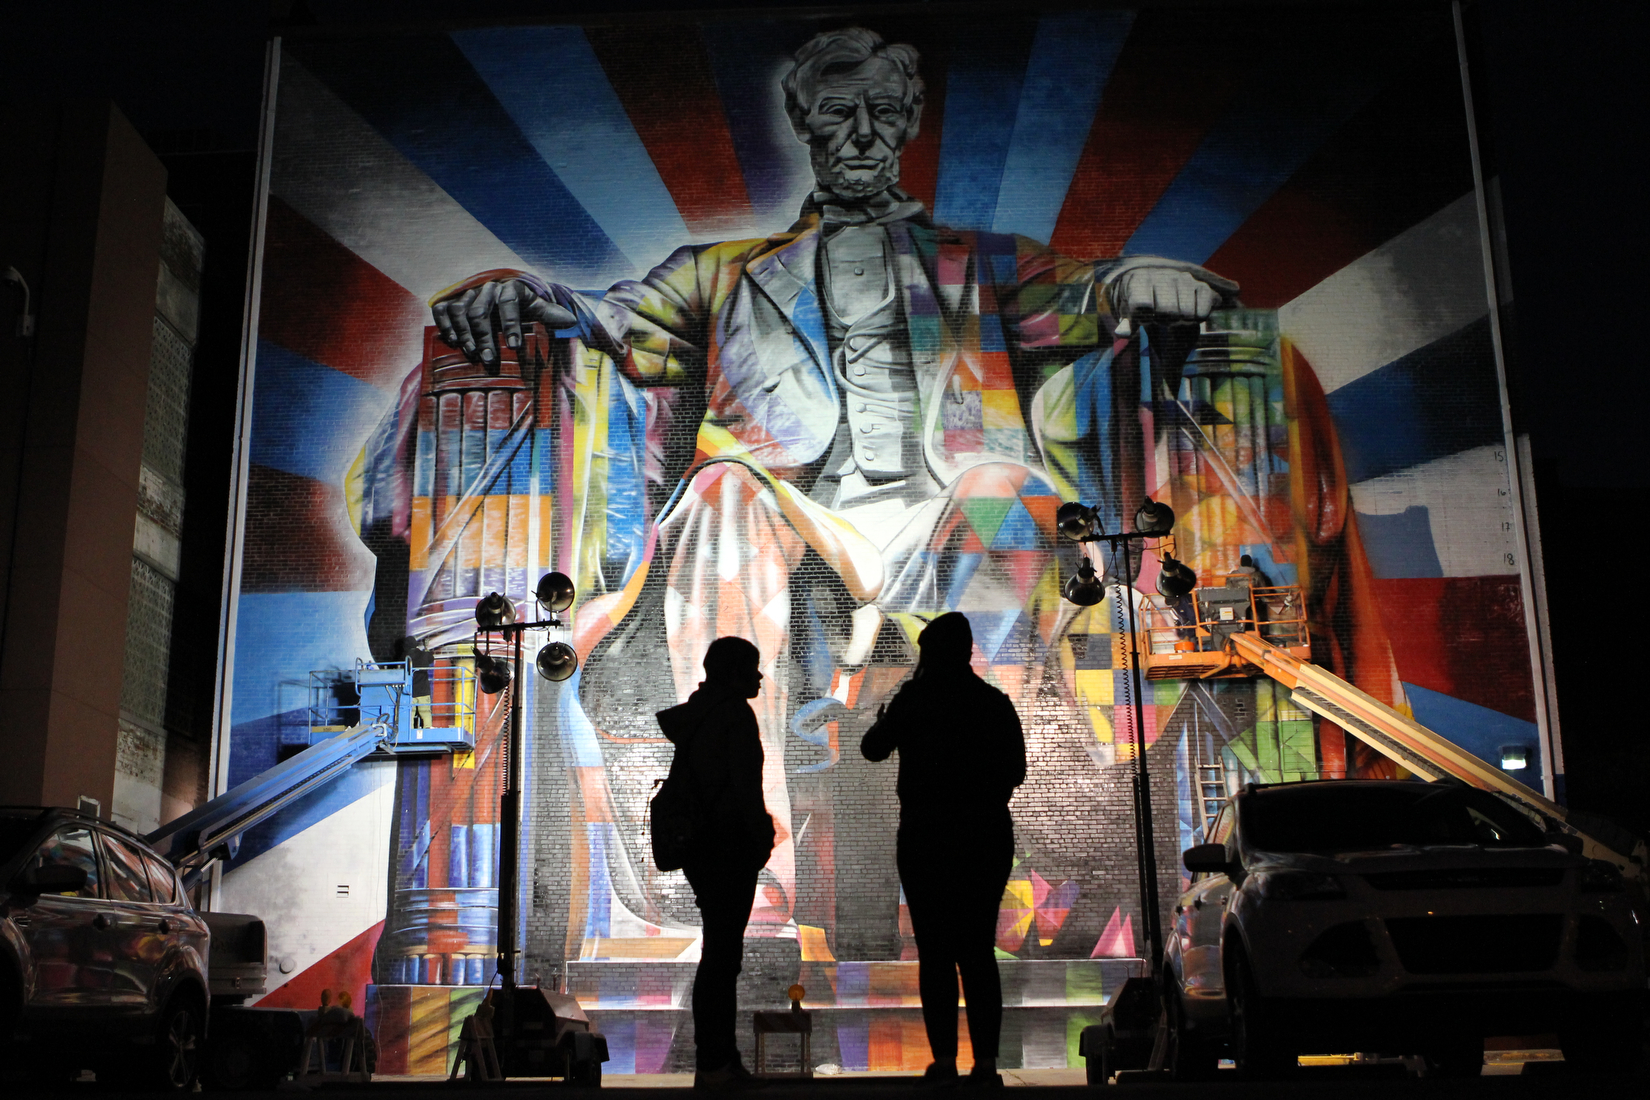 Late into the night Mandee Robinson (right) and Elizabeth O'dell watched Brazilian street-artist Eduardo Kobra and crew put the finishing touches on a mural of Abraham Lincoln on the rear of the Kentucky Theater in Lexington Ky.